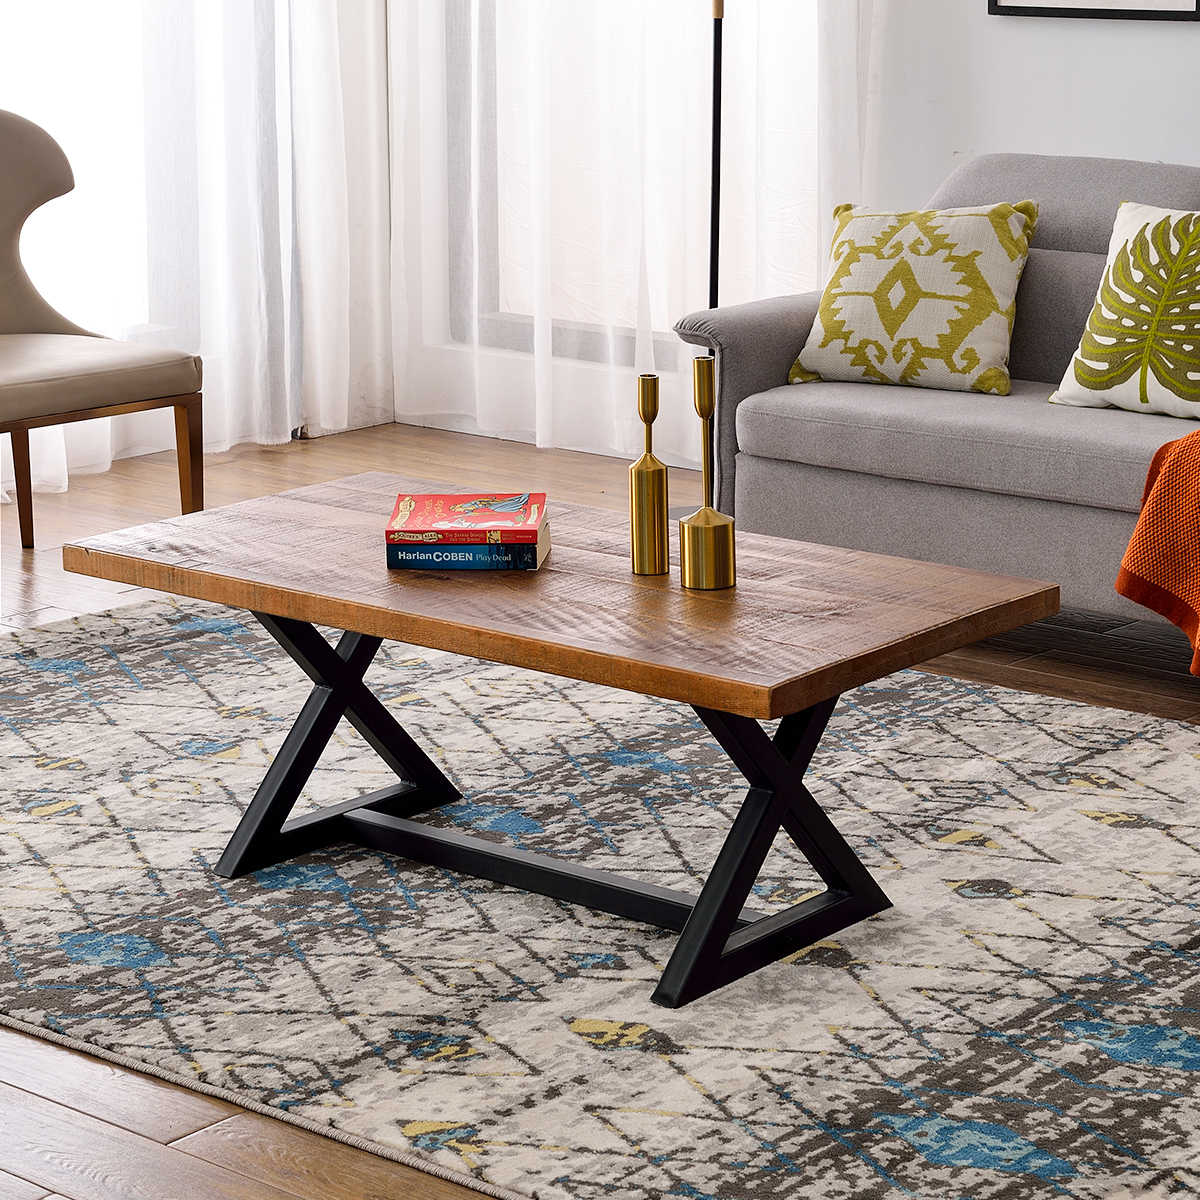 New Nature Wood Coffee Table Easy Assembly Tea Table Rustic Industrial Cocktail Table For Living Room With X Shaped Metal Frame Coffee Tables Aliexpress